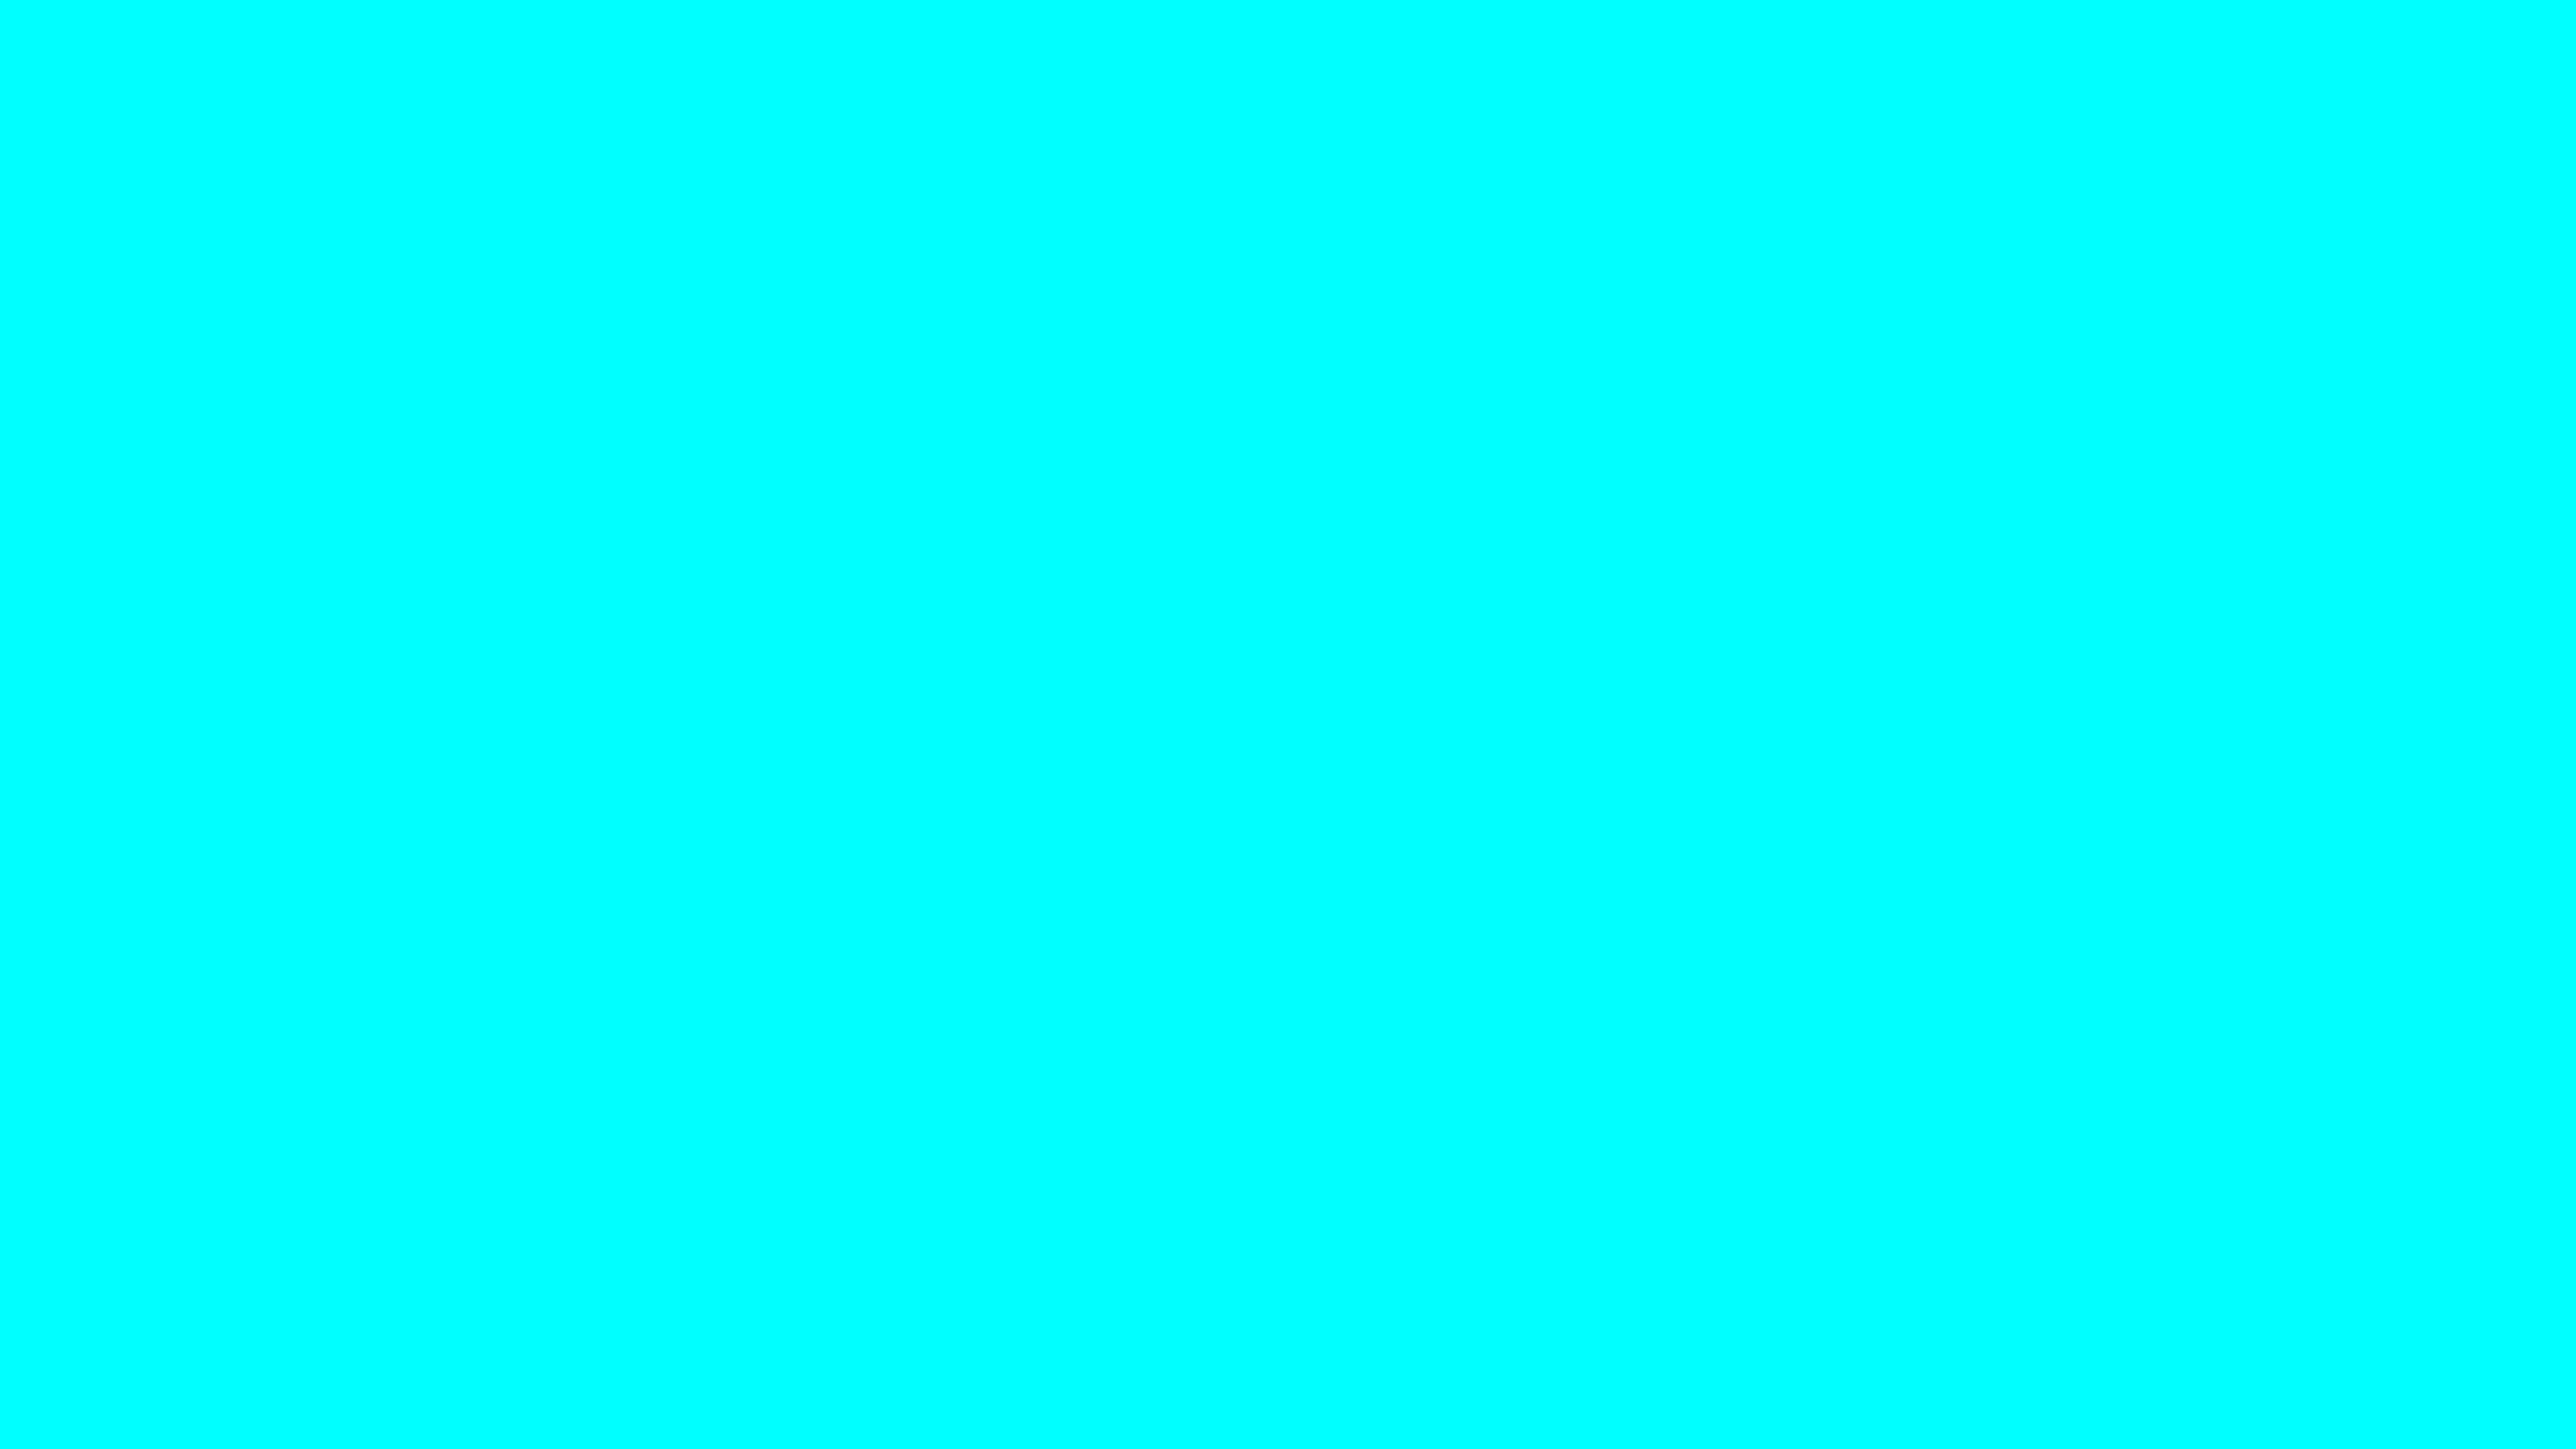 4096x2304 Electric Cyan Solid Color Background